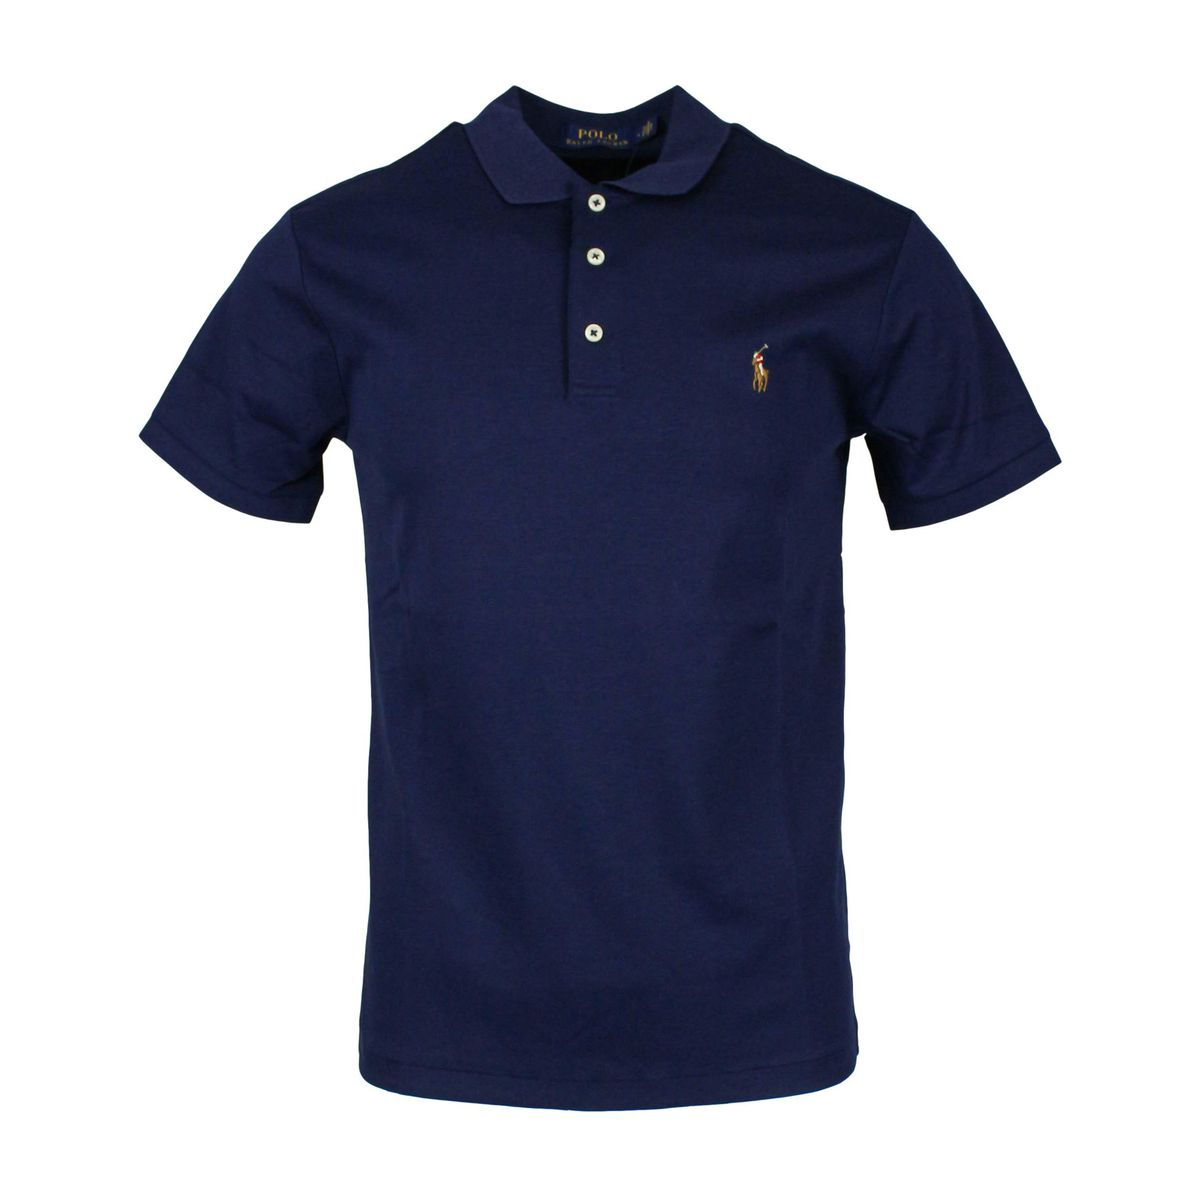 Polo slim fit in cotone pima Navy Polo Ralph Lauren